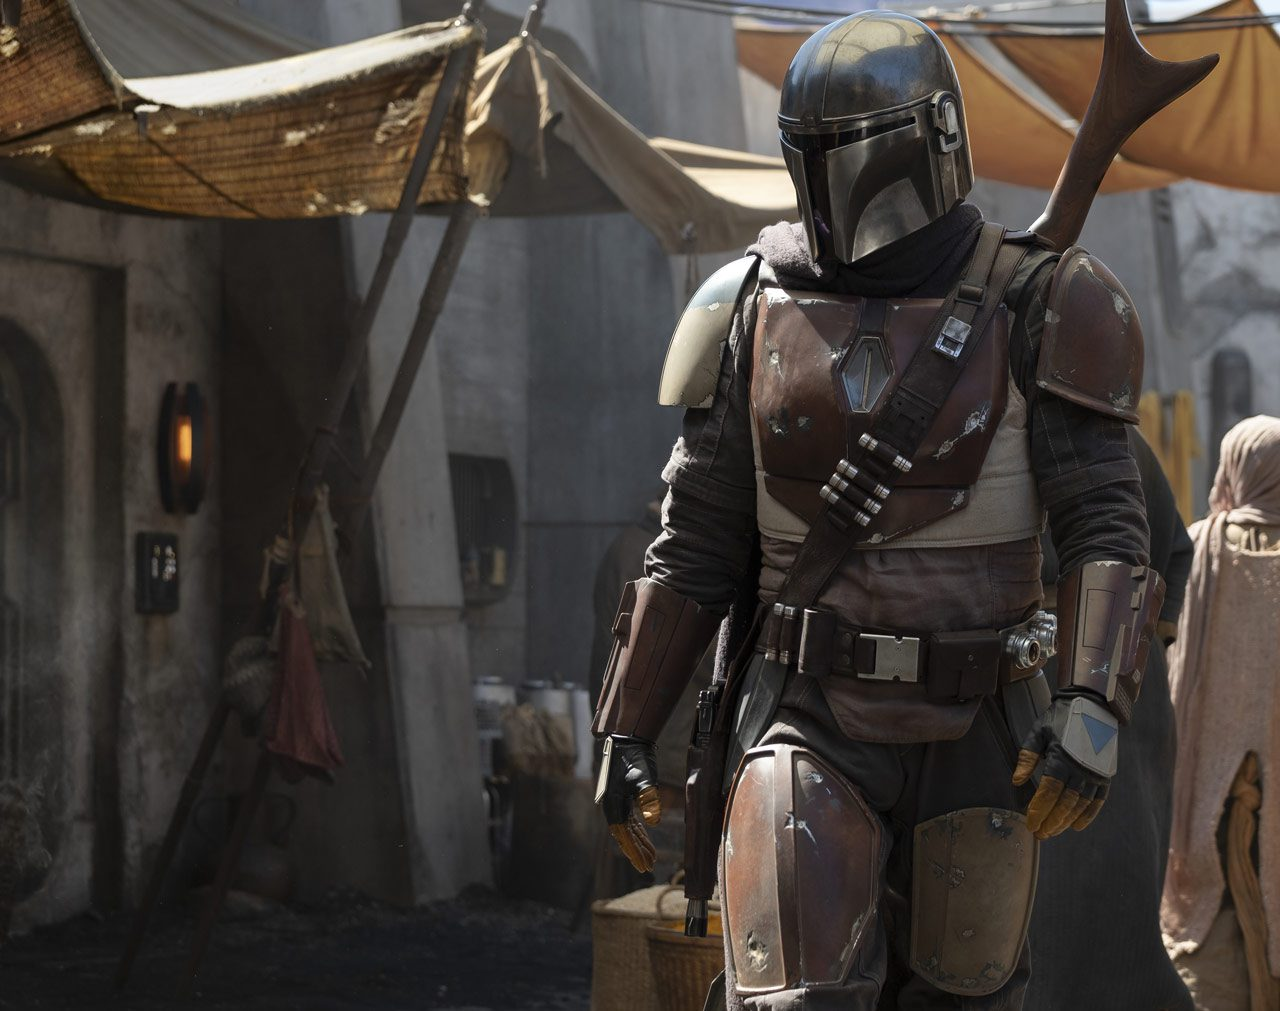 Directors For 'Star Wars' Series 'The Mandalorian' Include Taika Waititi, Rick Famuyiwa, and others